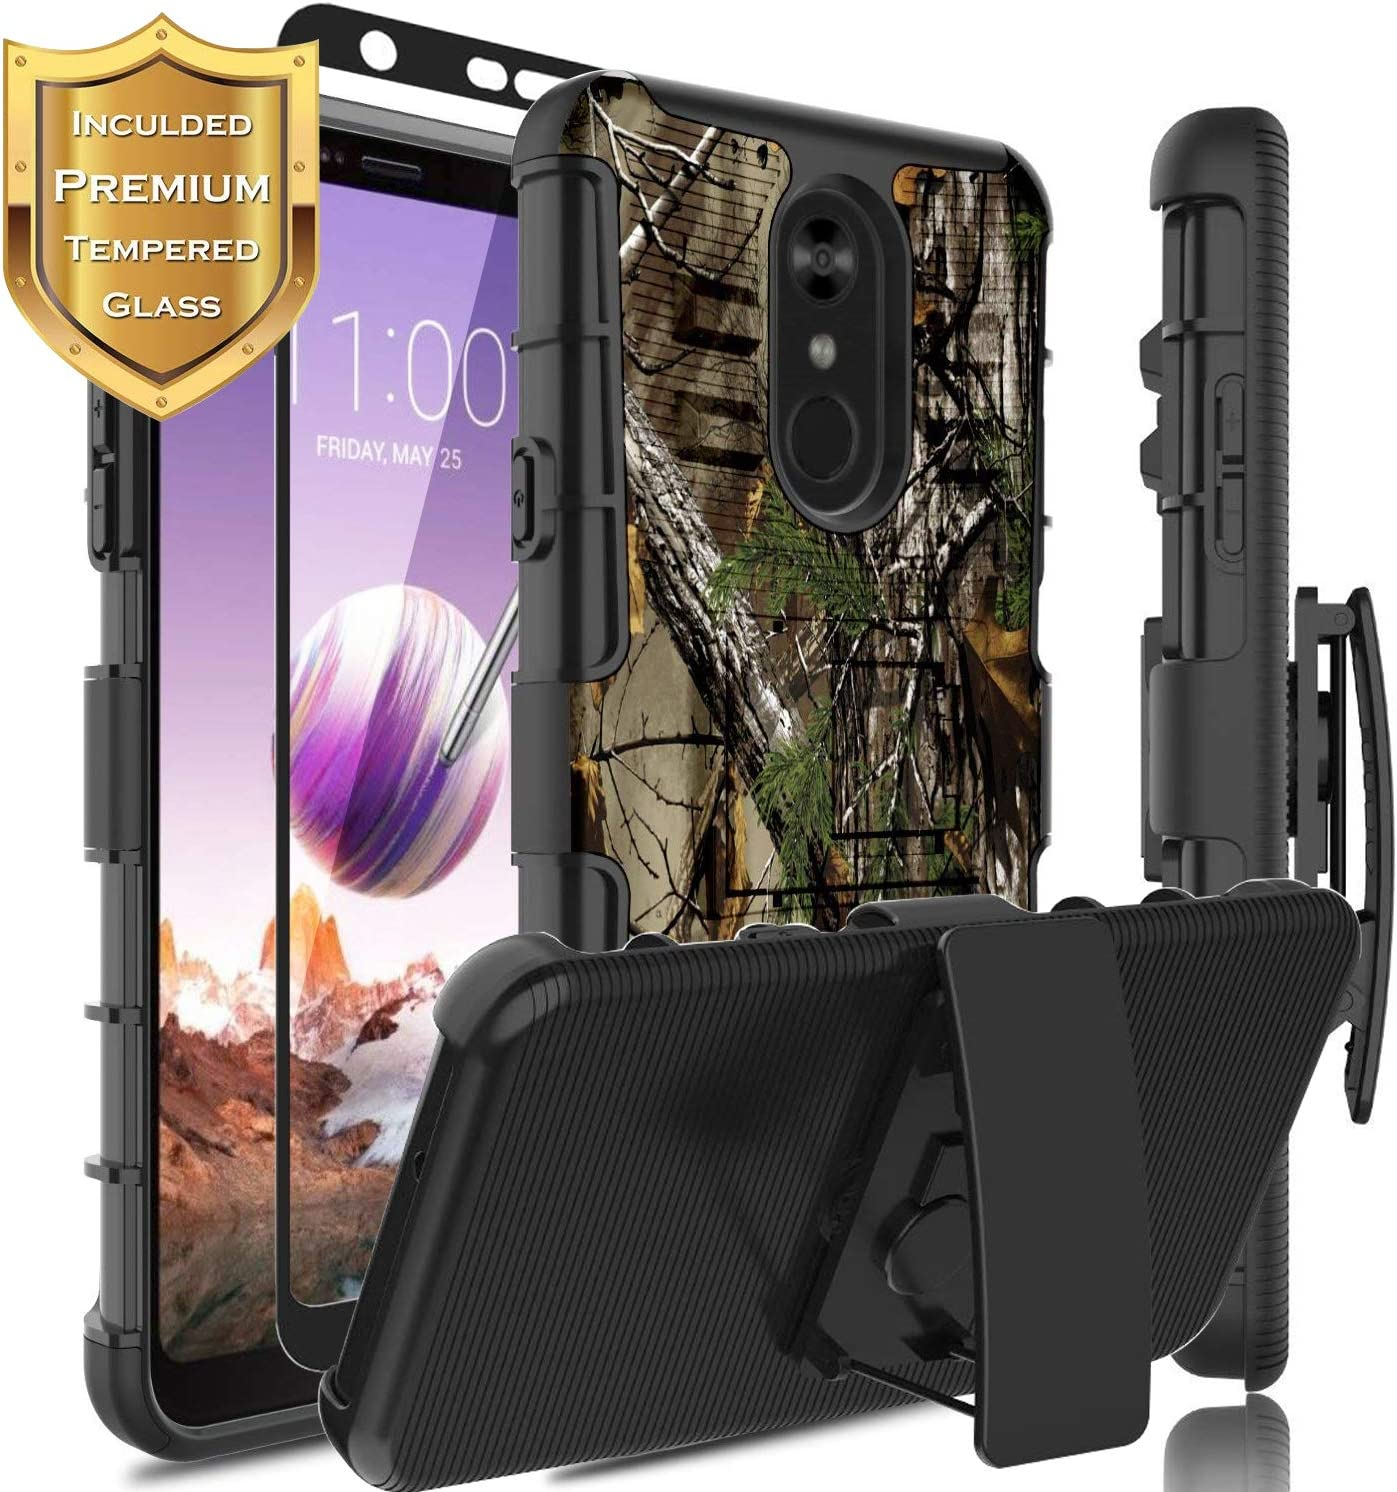 LG Stylo 4 Case [with Full Coverage Screen Protector],LG Stylo 4 Case,LG Q Stylus Plus Case W/[Built-in Kickstand],Shock-Absorbing Holster Heavy Duty Protective Swivel Belt Clip Phone Cover (Camo)